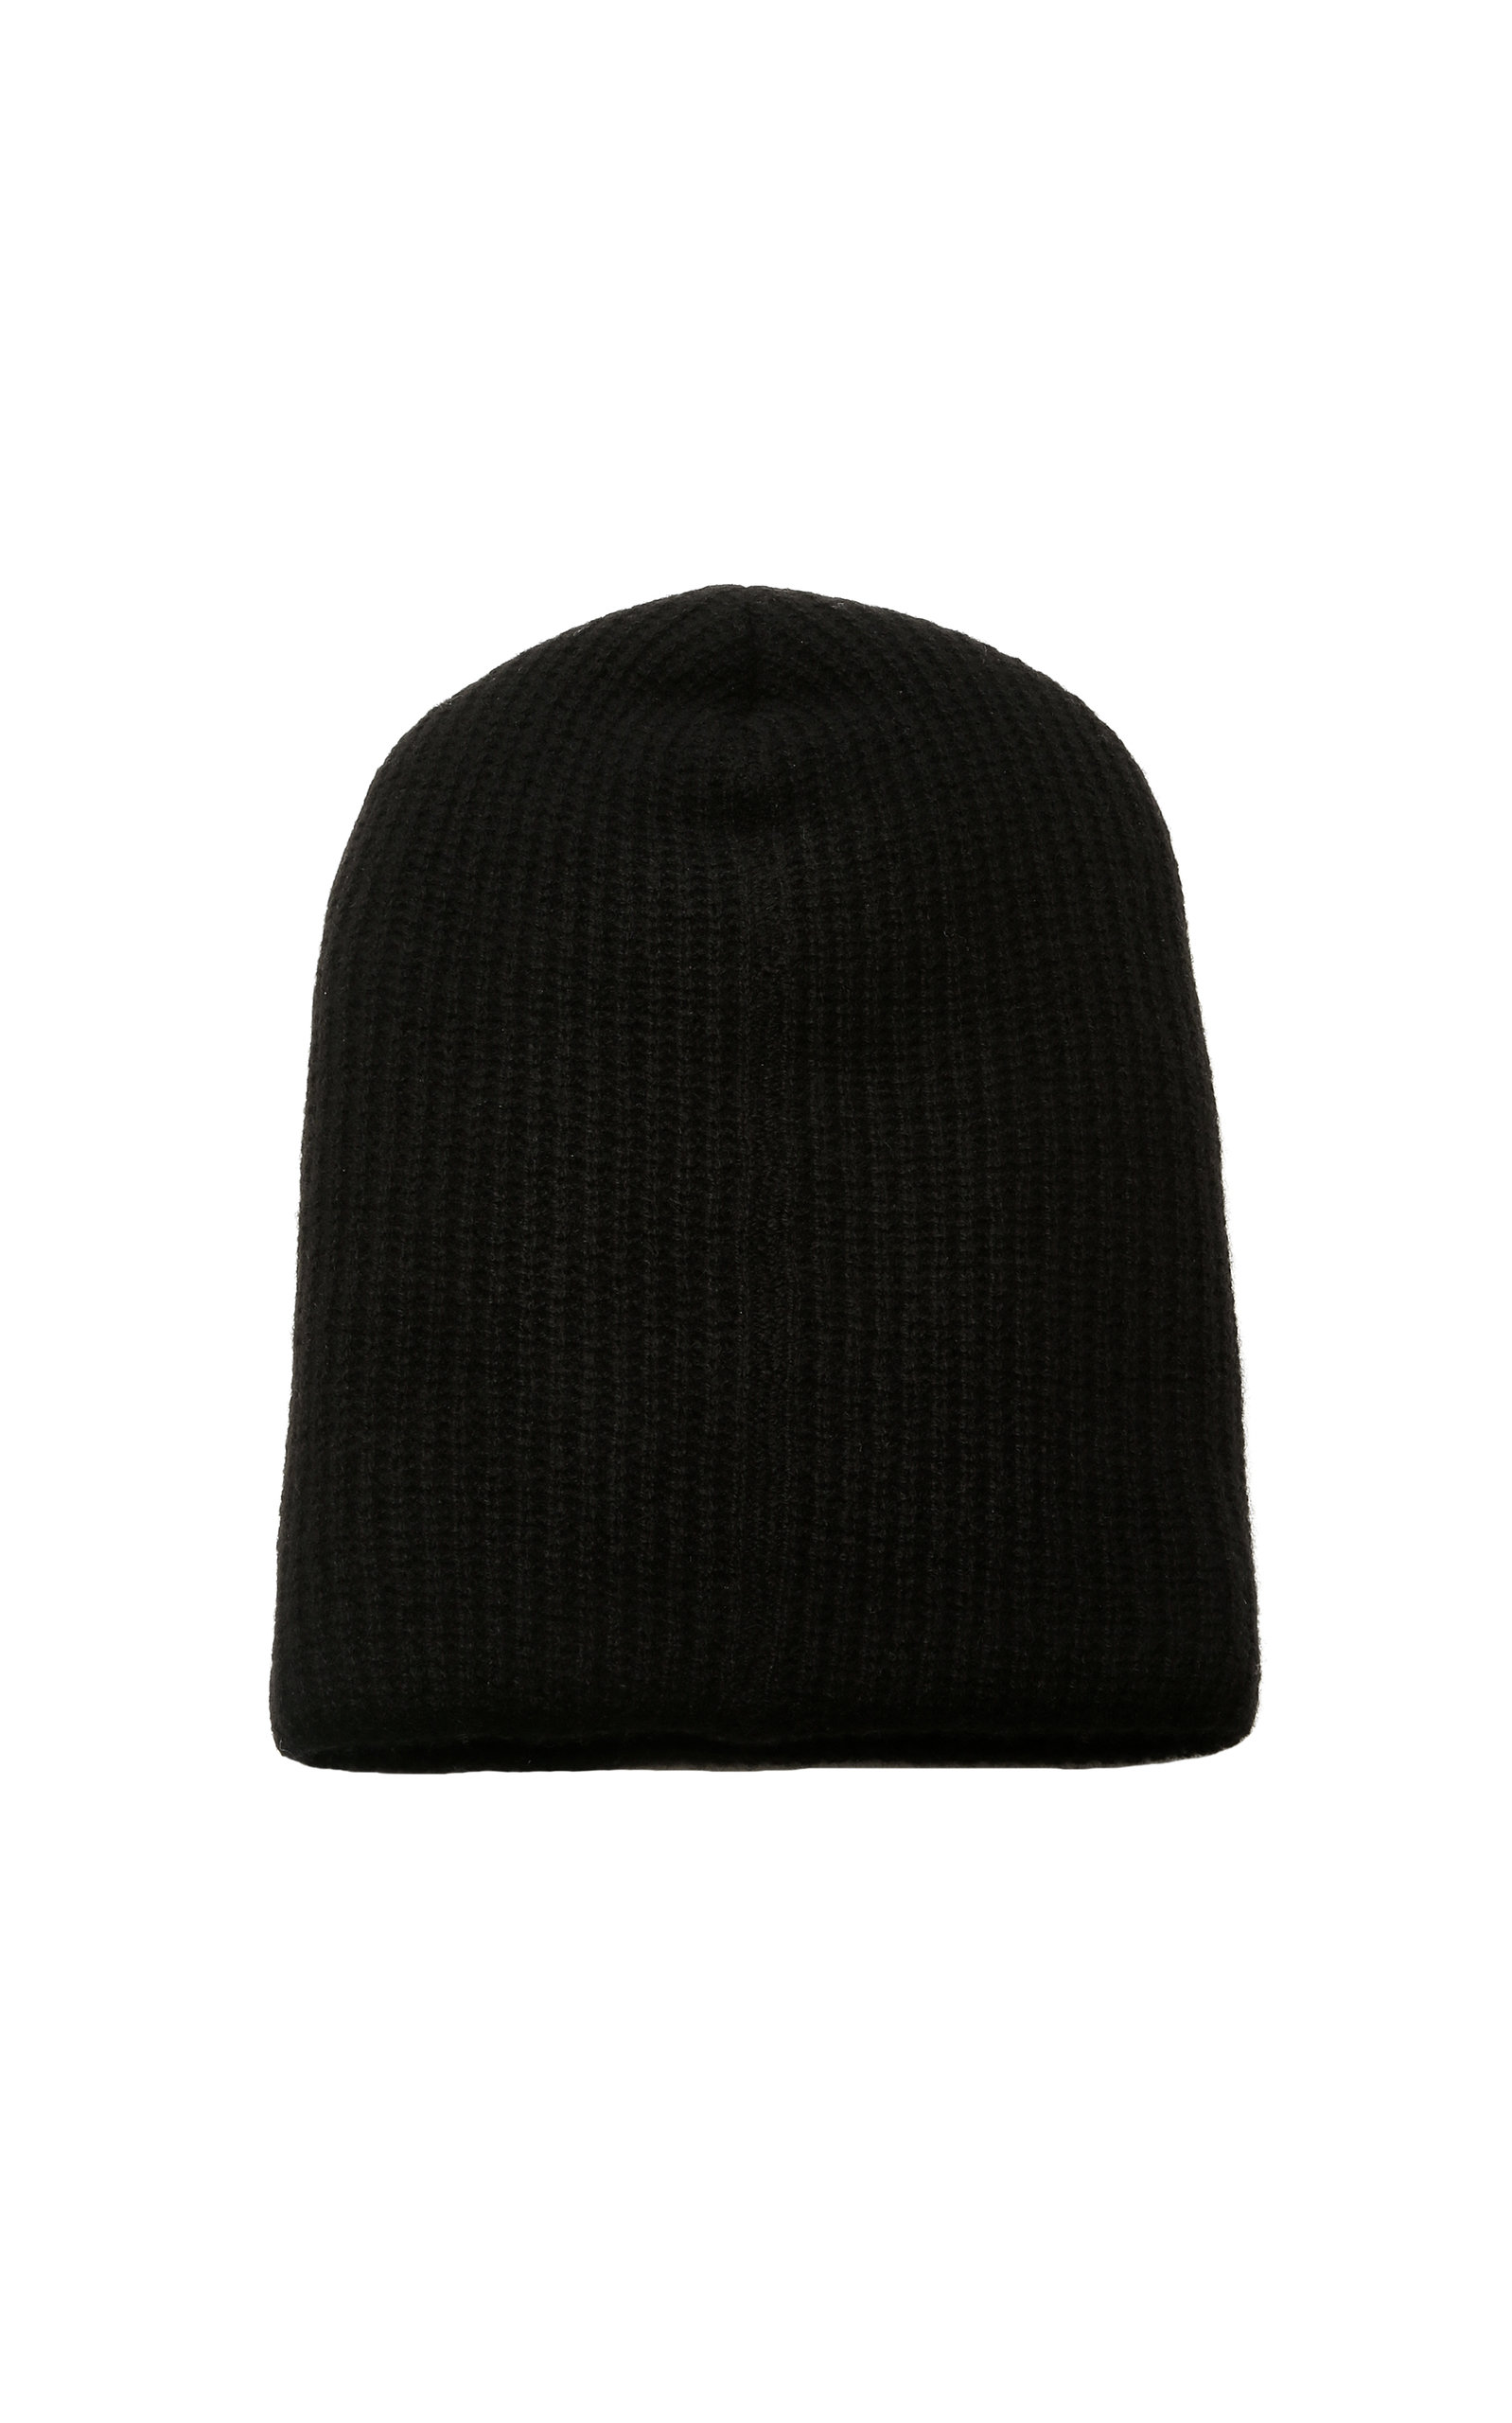 c38df846668 The Elder StatesmanKisser Ribbed Cashmere Beanie. CLOSE. Loading. Loading